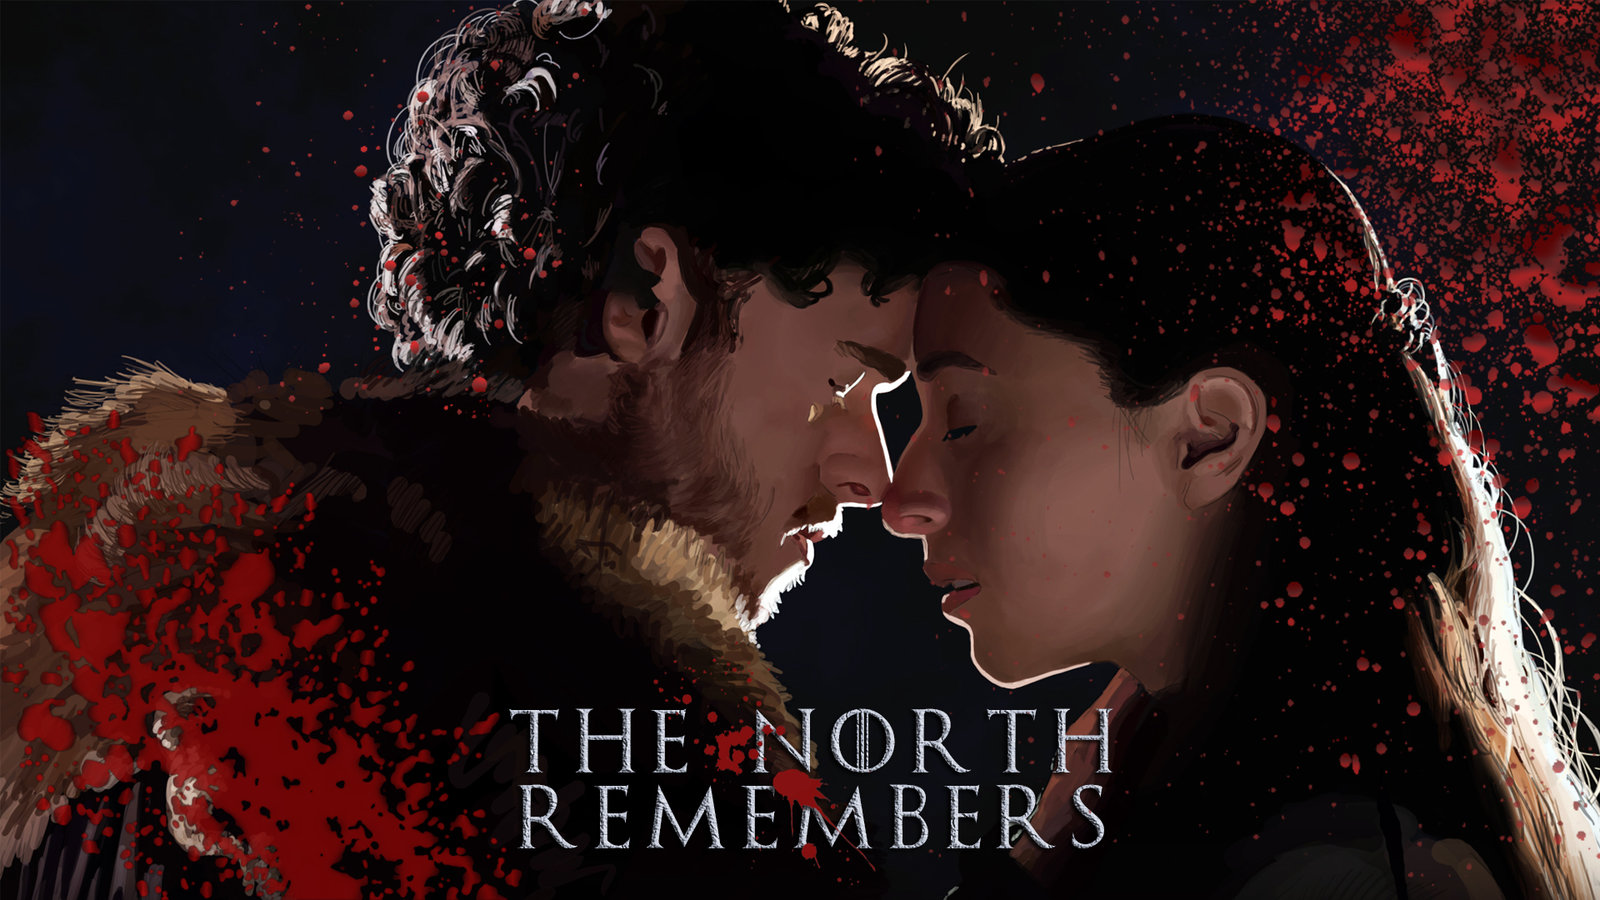 the north remembers by masteryoda91 fan art wallpaper movies tv 2013 1600x900